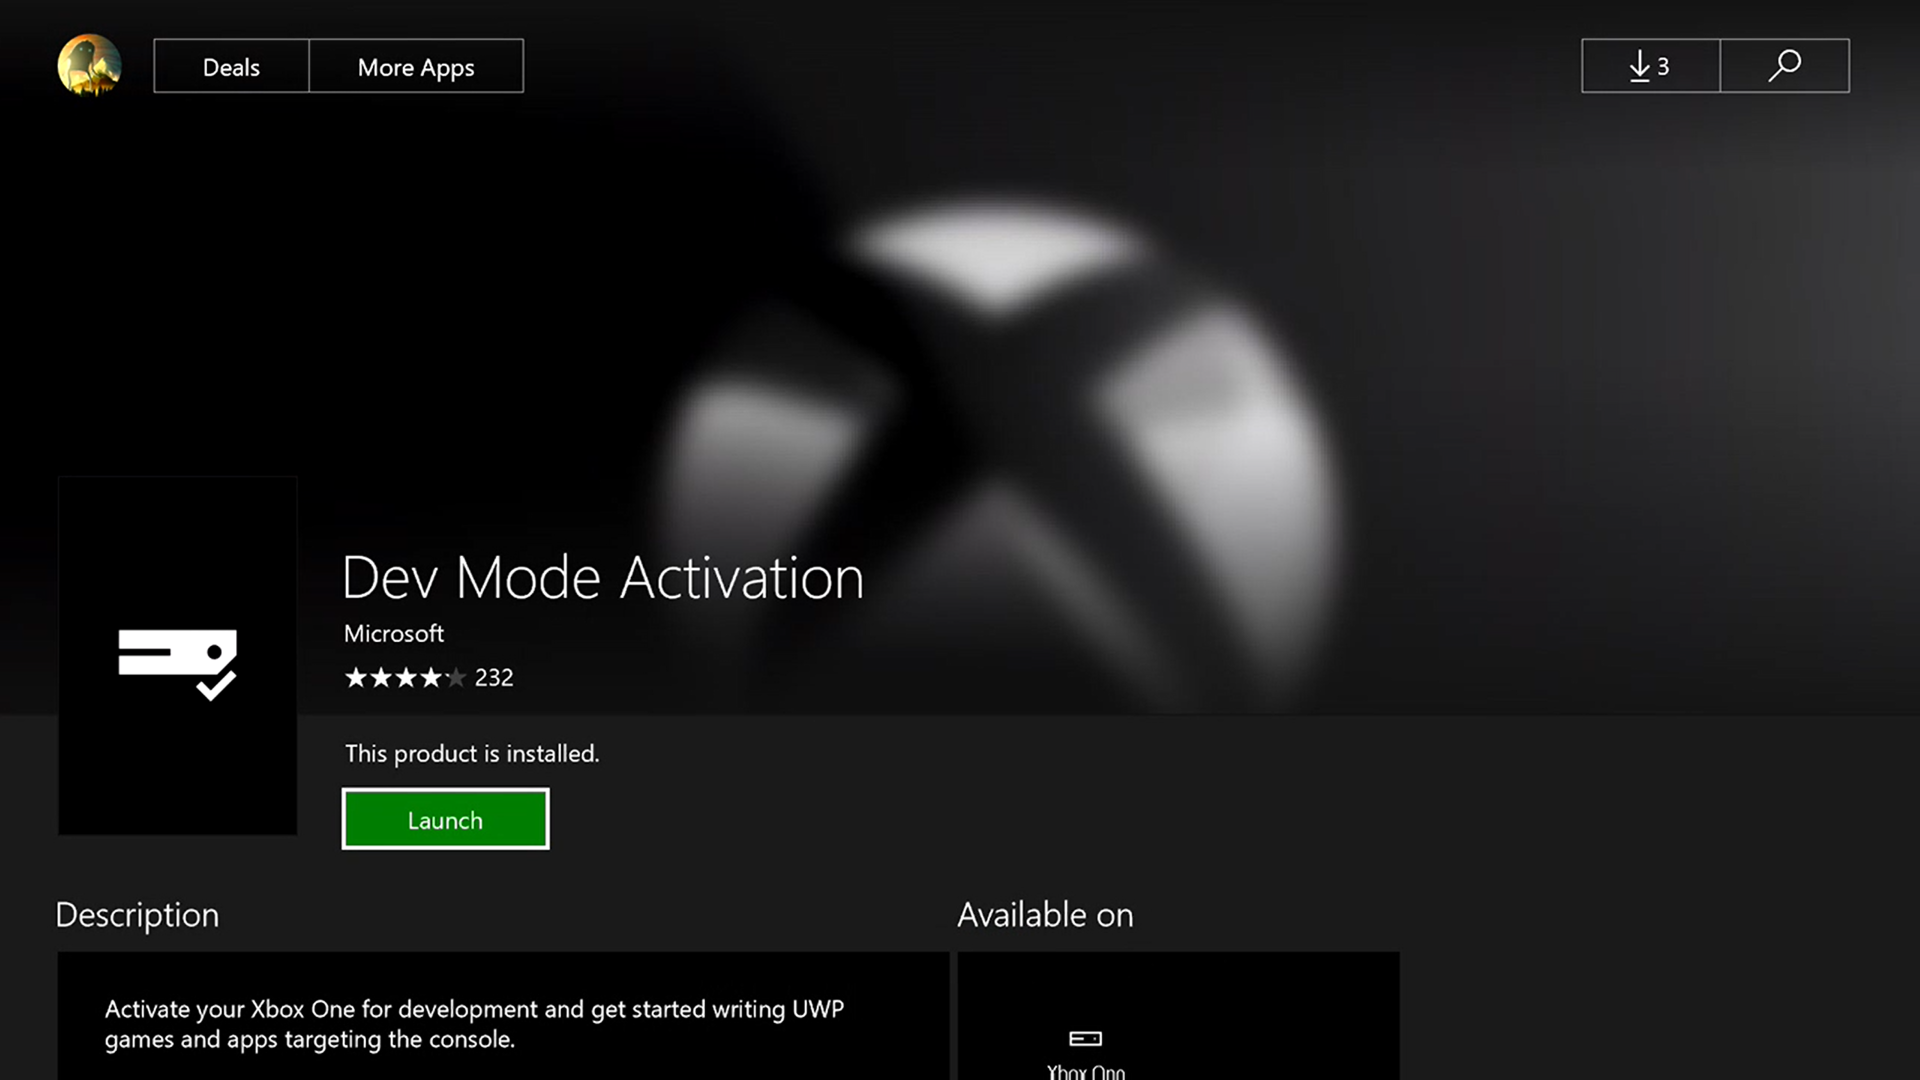 Xbox One Developer Mode activation - Windows UWP applications